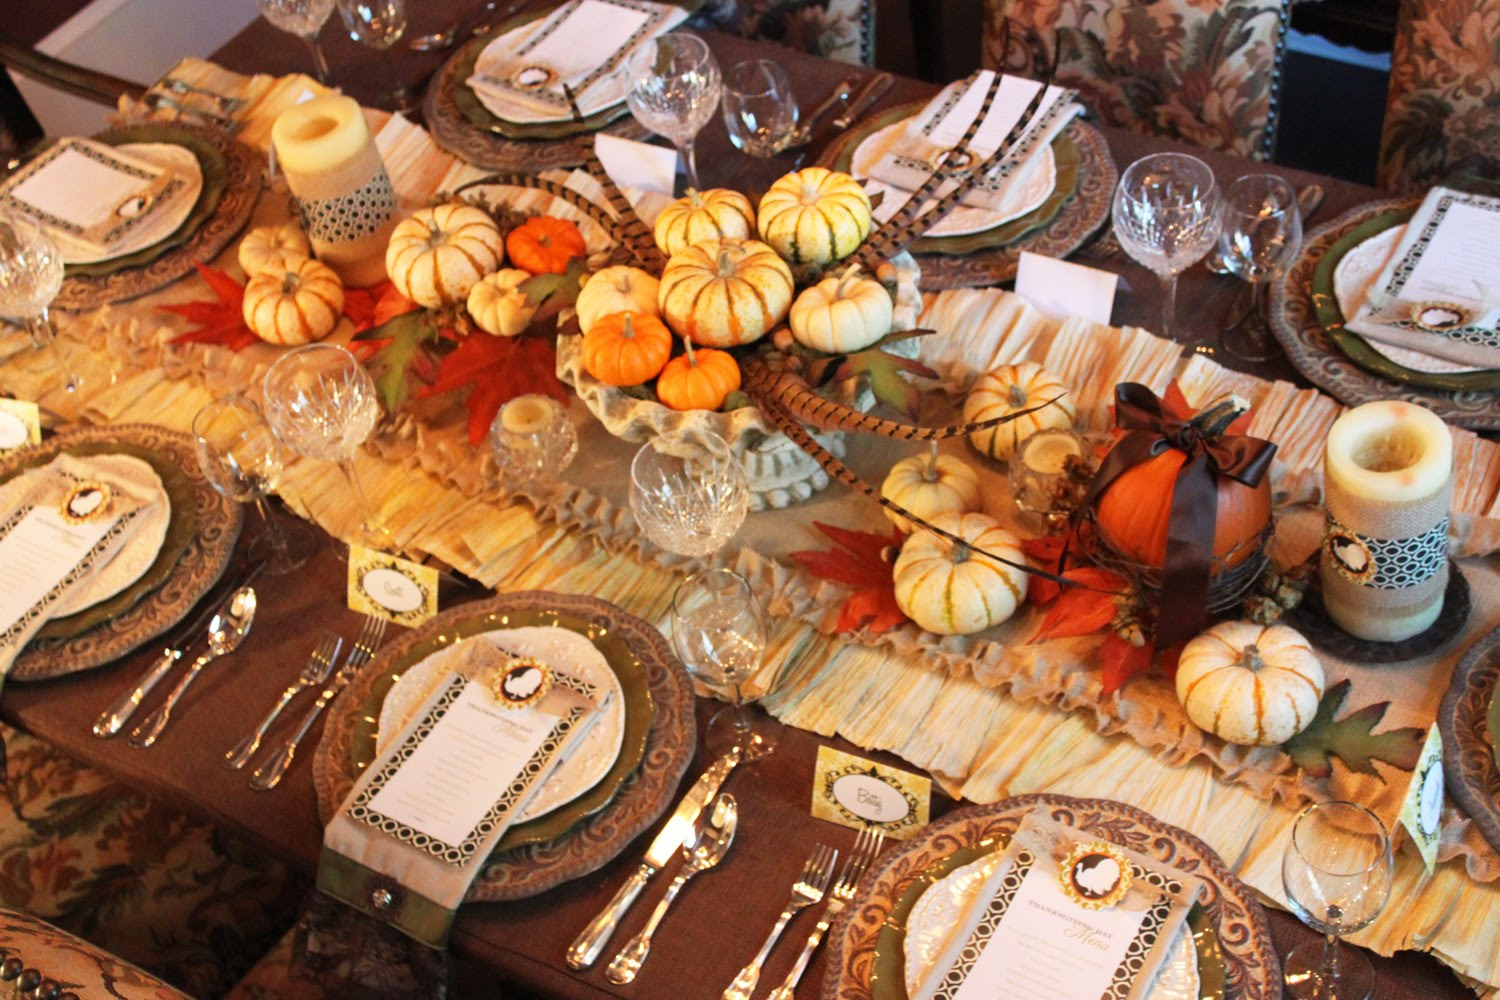 Dining table dining table thanksgiving Thanksgiving table decorations homemade